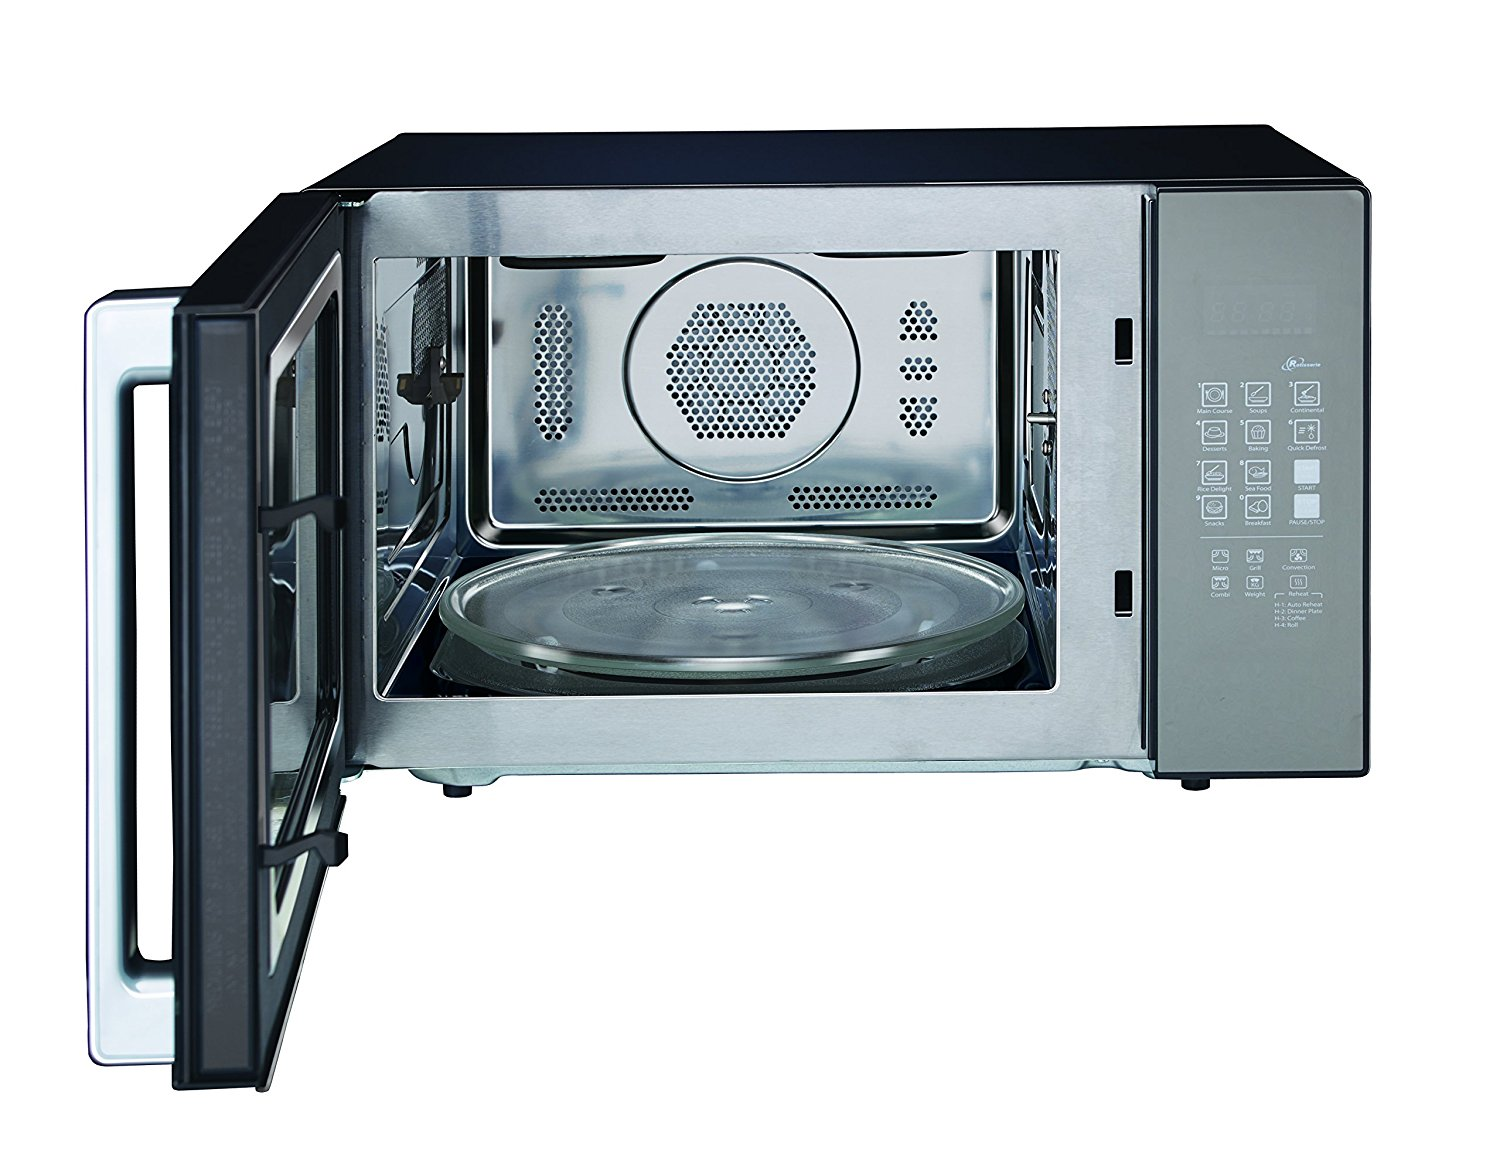 Morphy Richards 30 MCGR Microwave Oven 30 Liters